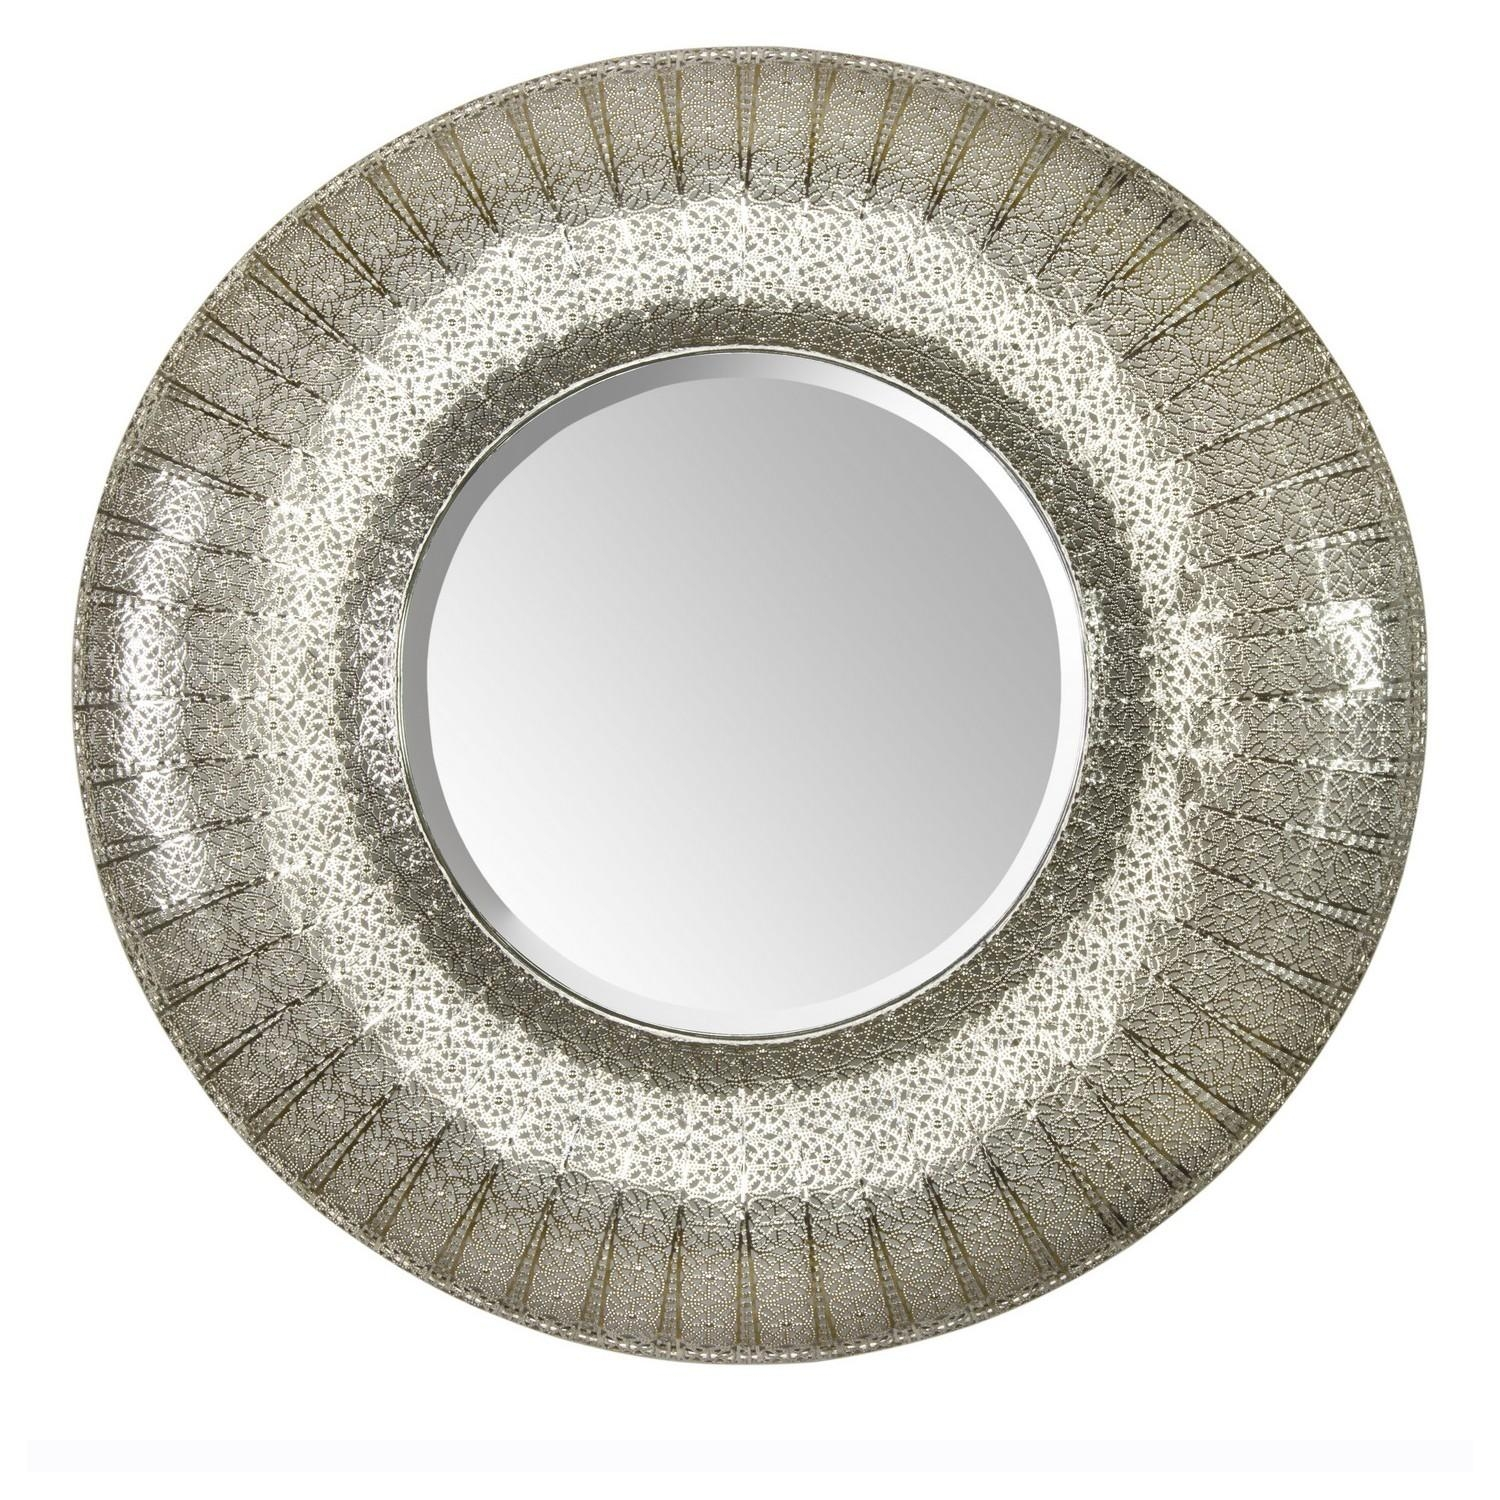 Large Circular Wall Mirrors 89 Beautiful Decoration Also Modern Inside Large Round Silver Mirror (View 12 of 20)